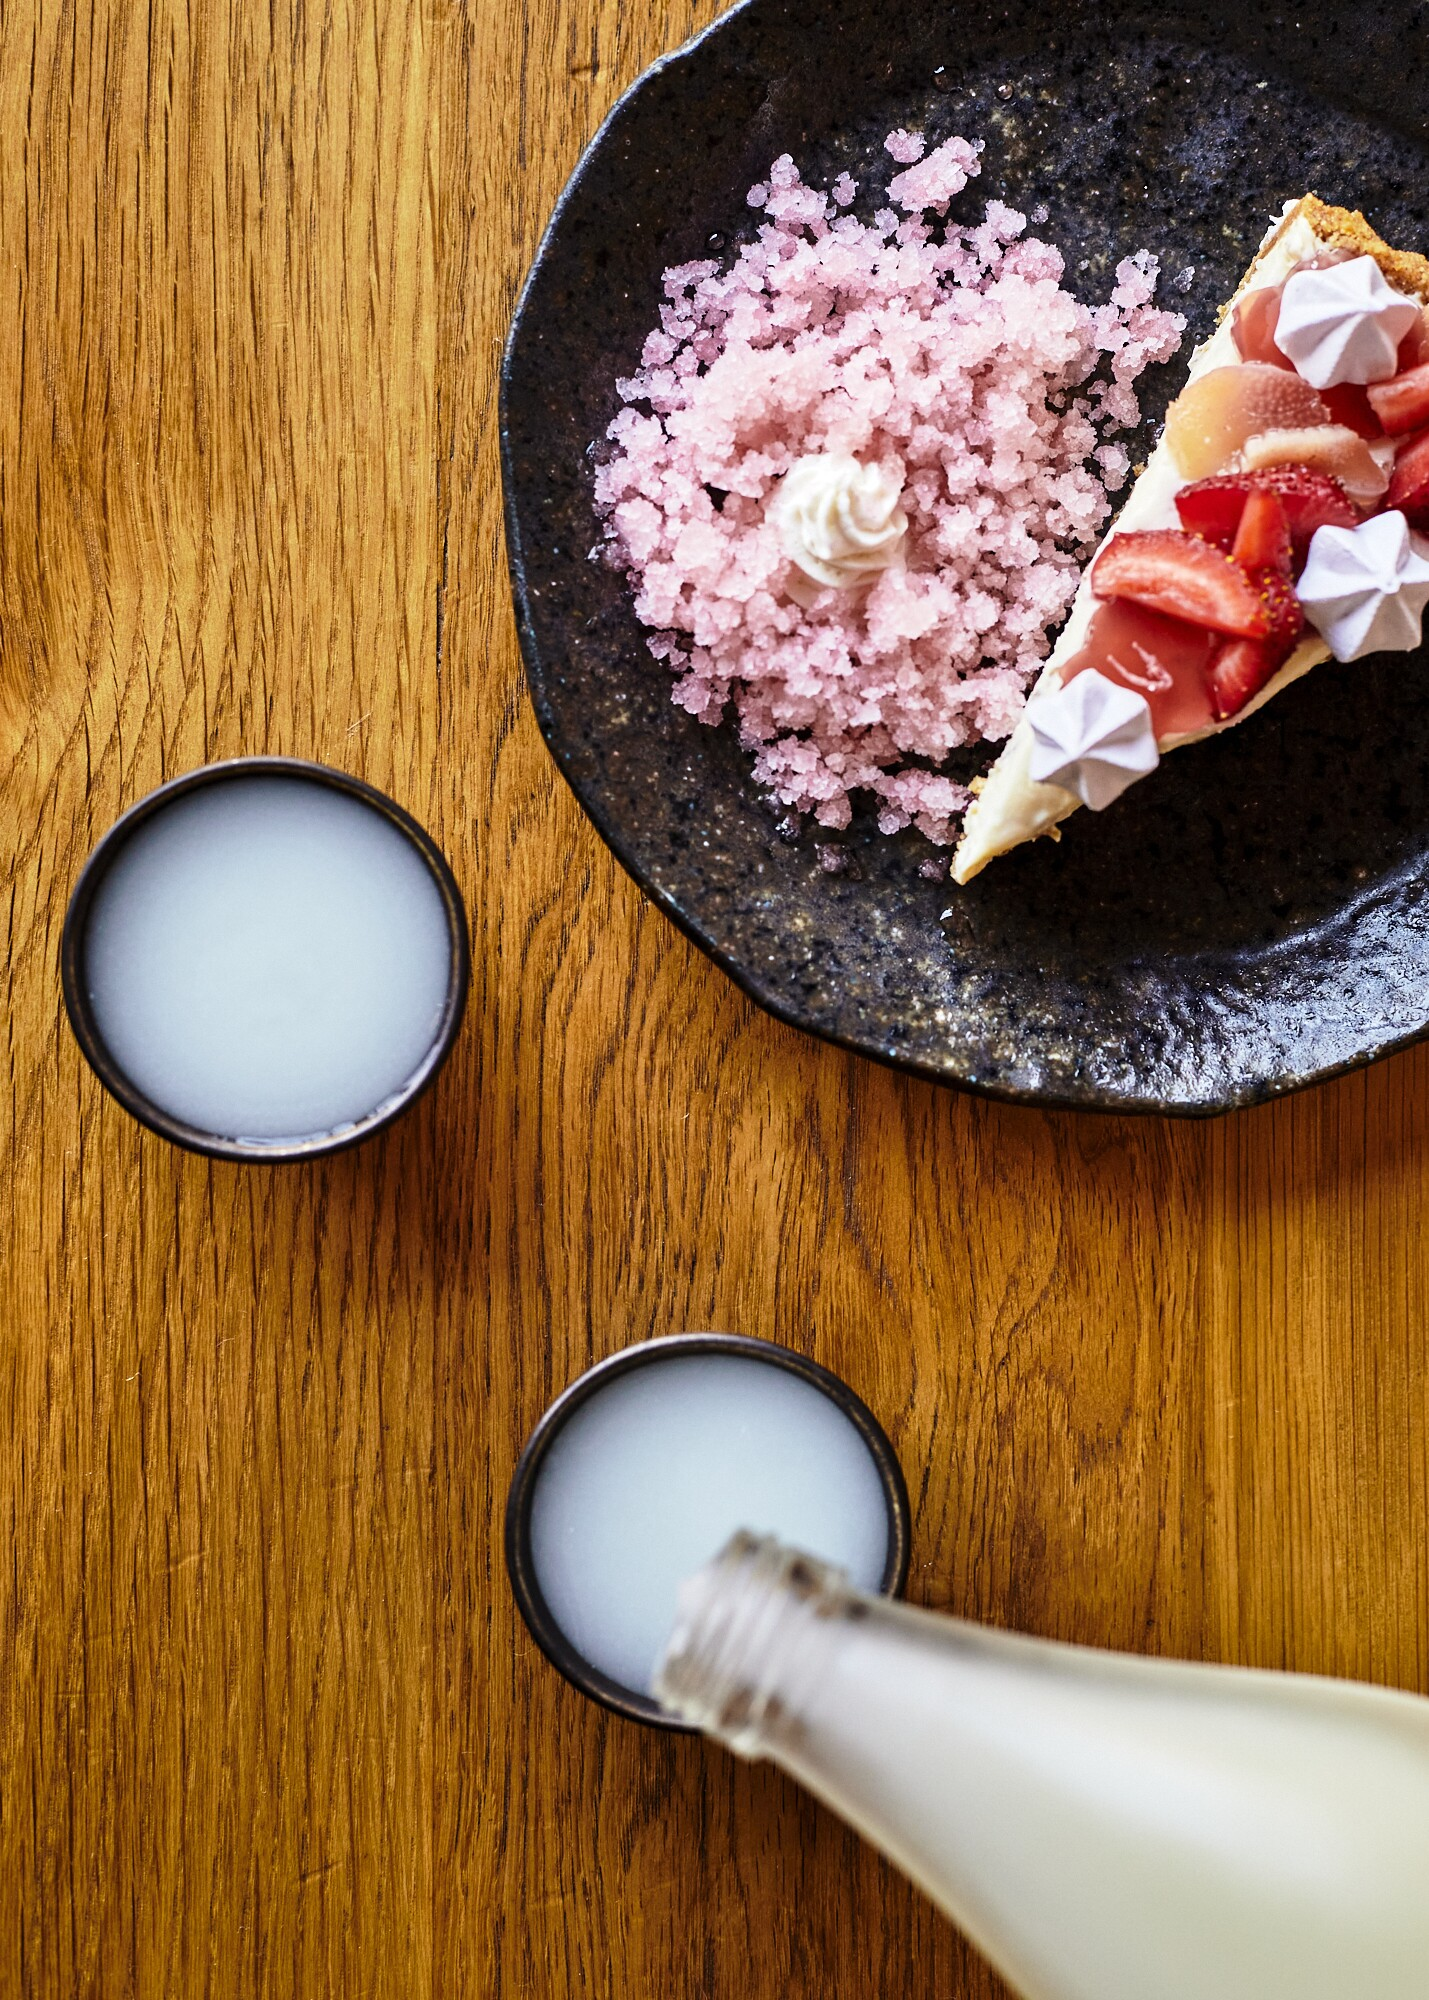 Cloudy nigori is poured in a cup beside a plate of ume cheesecake topped with strawberry rhubarb jellies, hibiscus meringue and red shiso granita.